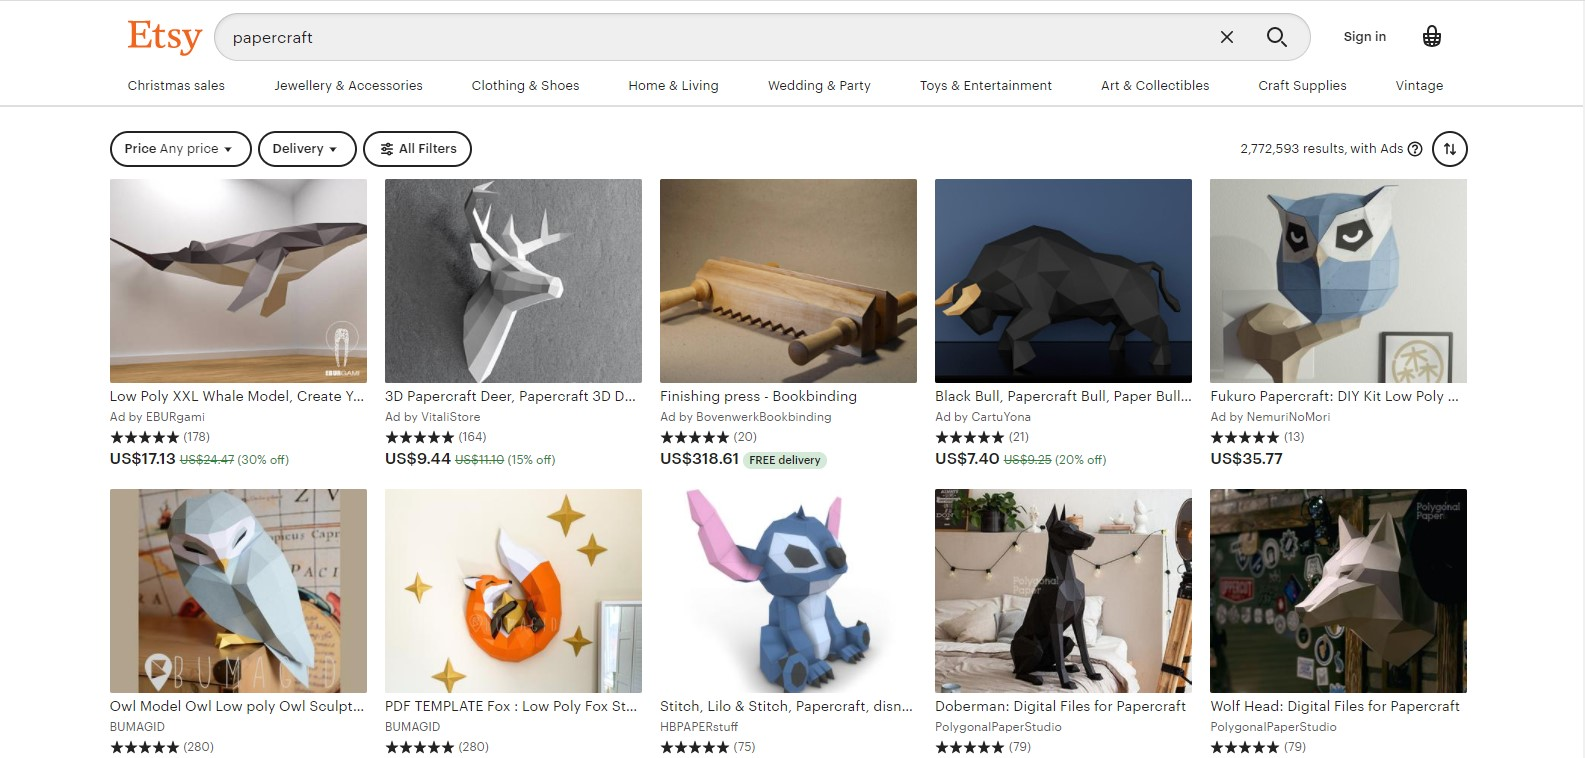 Papercraft - Top 10 Best Selling Items on Etsy